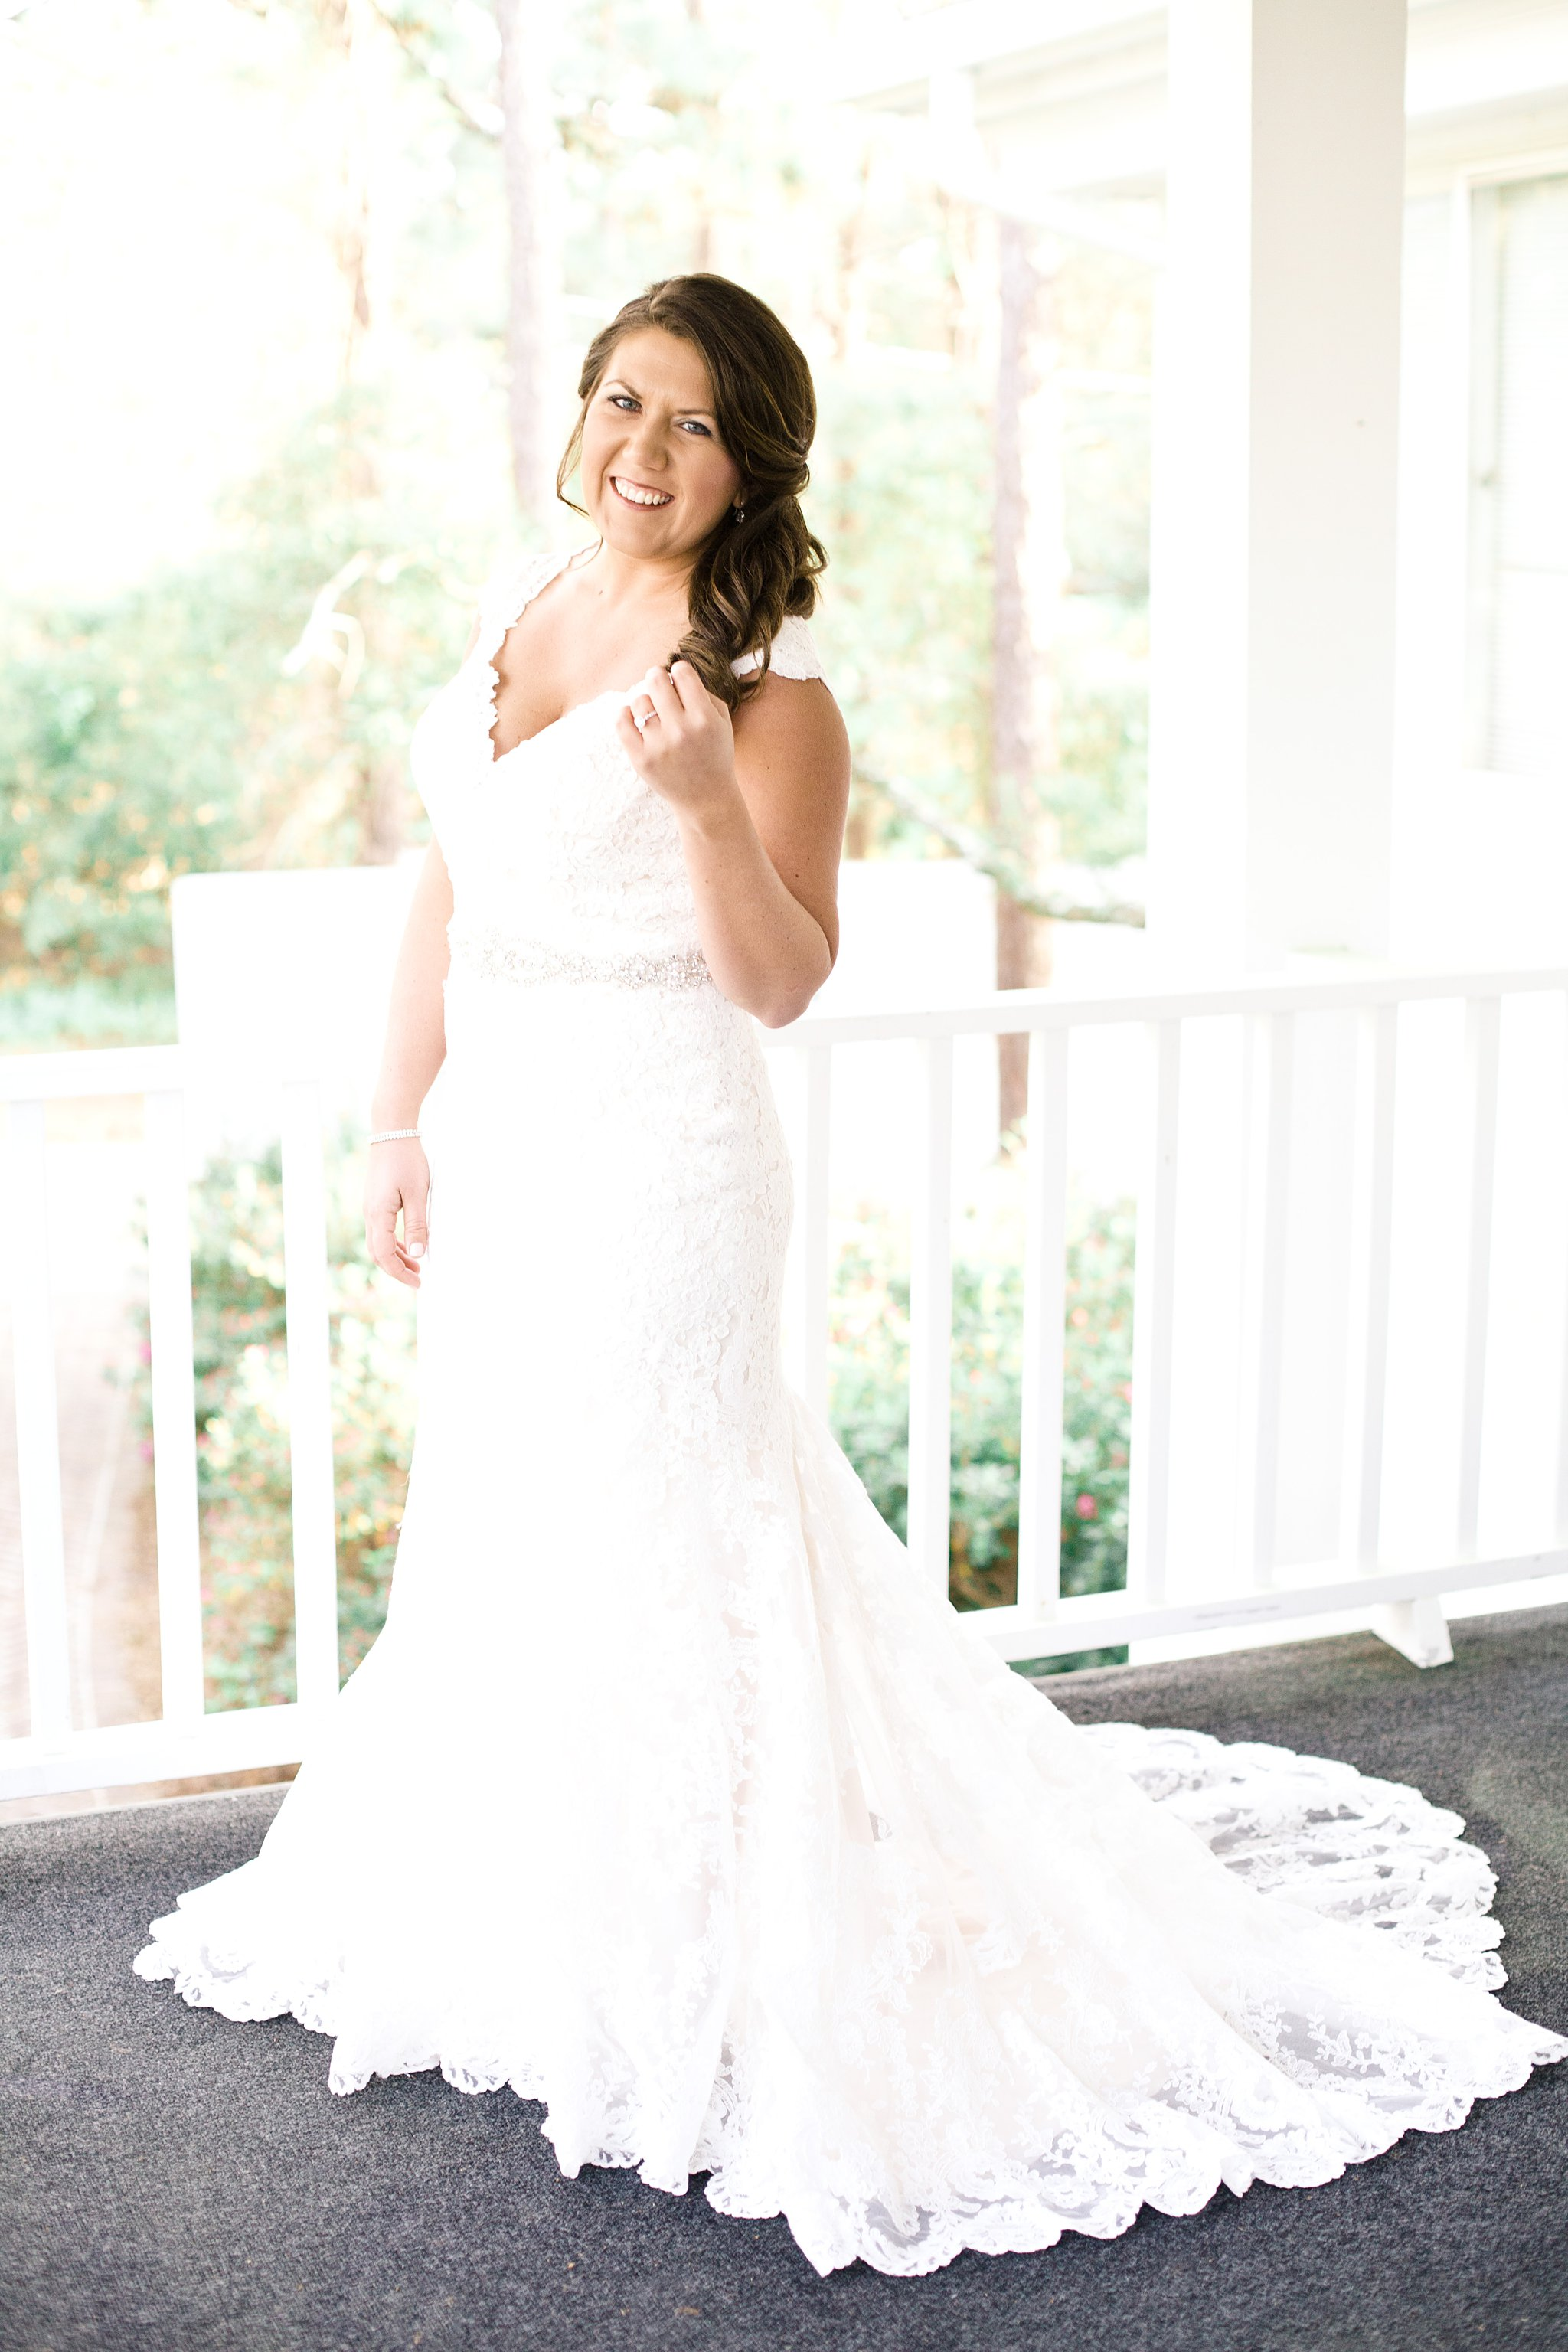 litchfield-golf-country-club-bridal-session-pawleys-island-sc-photos_0150.jpg